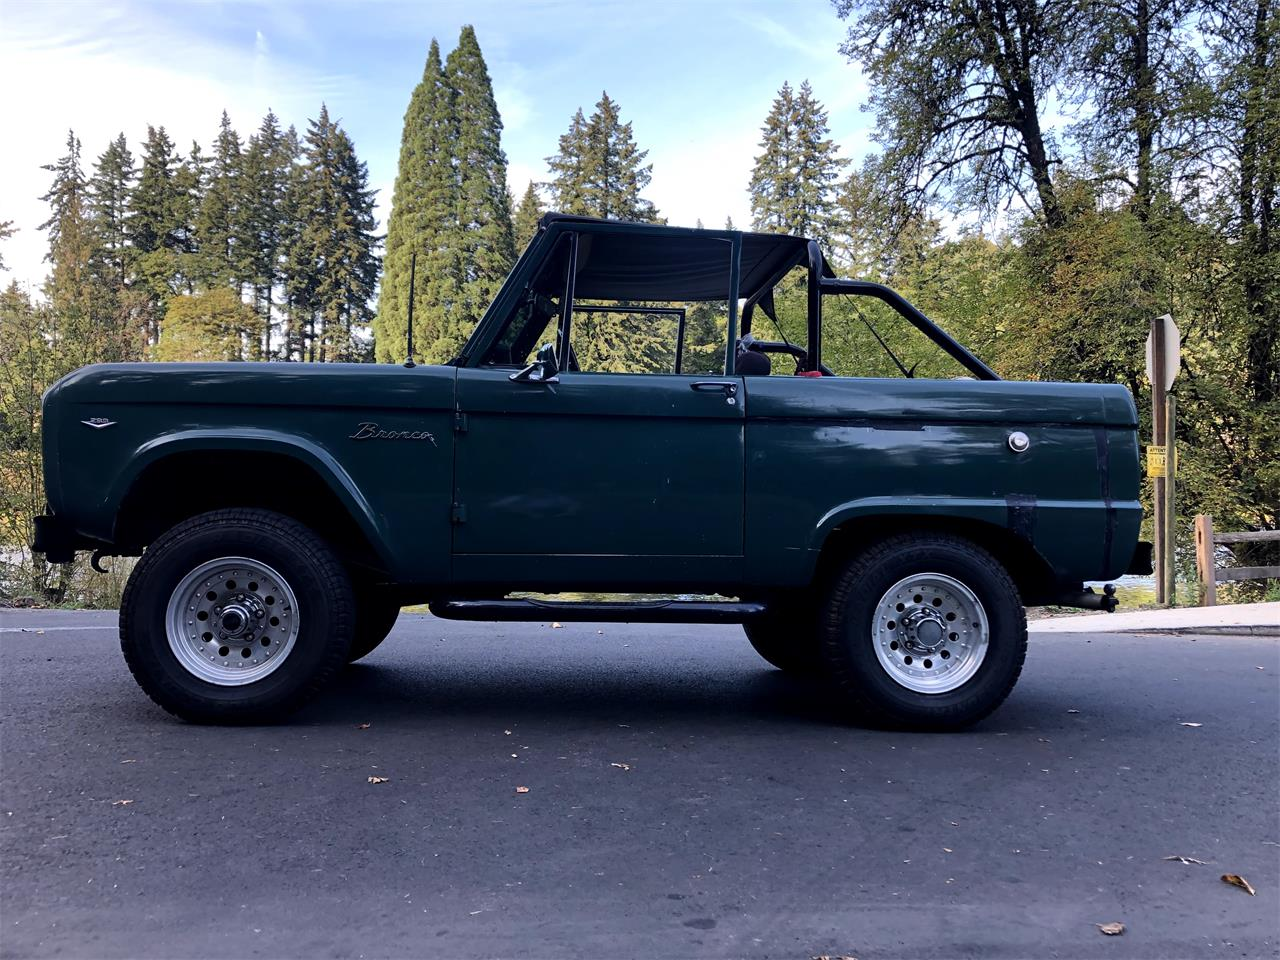 1967 Ford Bronco (CC-1417690) for sale in OREGON CITY, Oregon